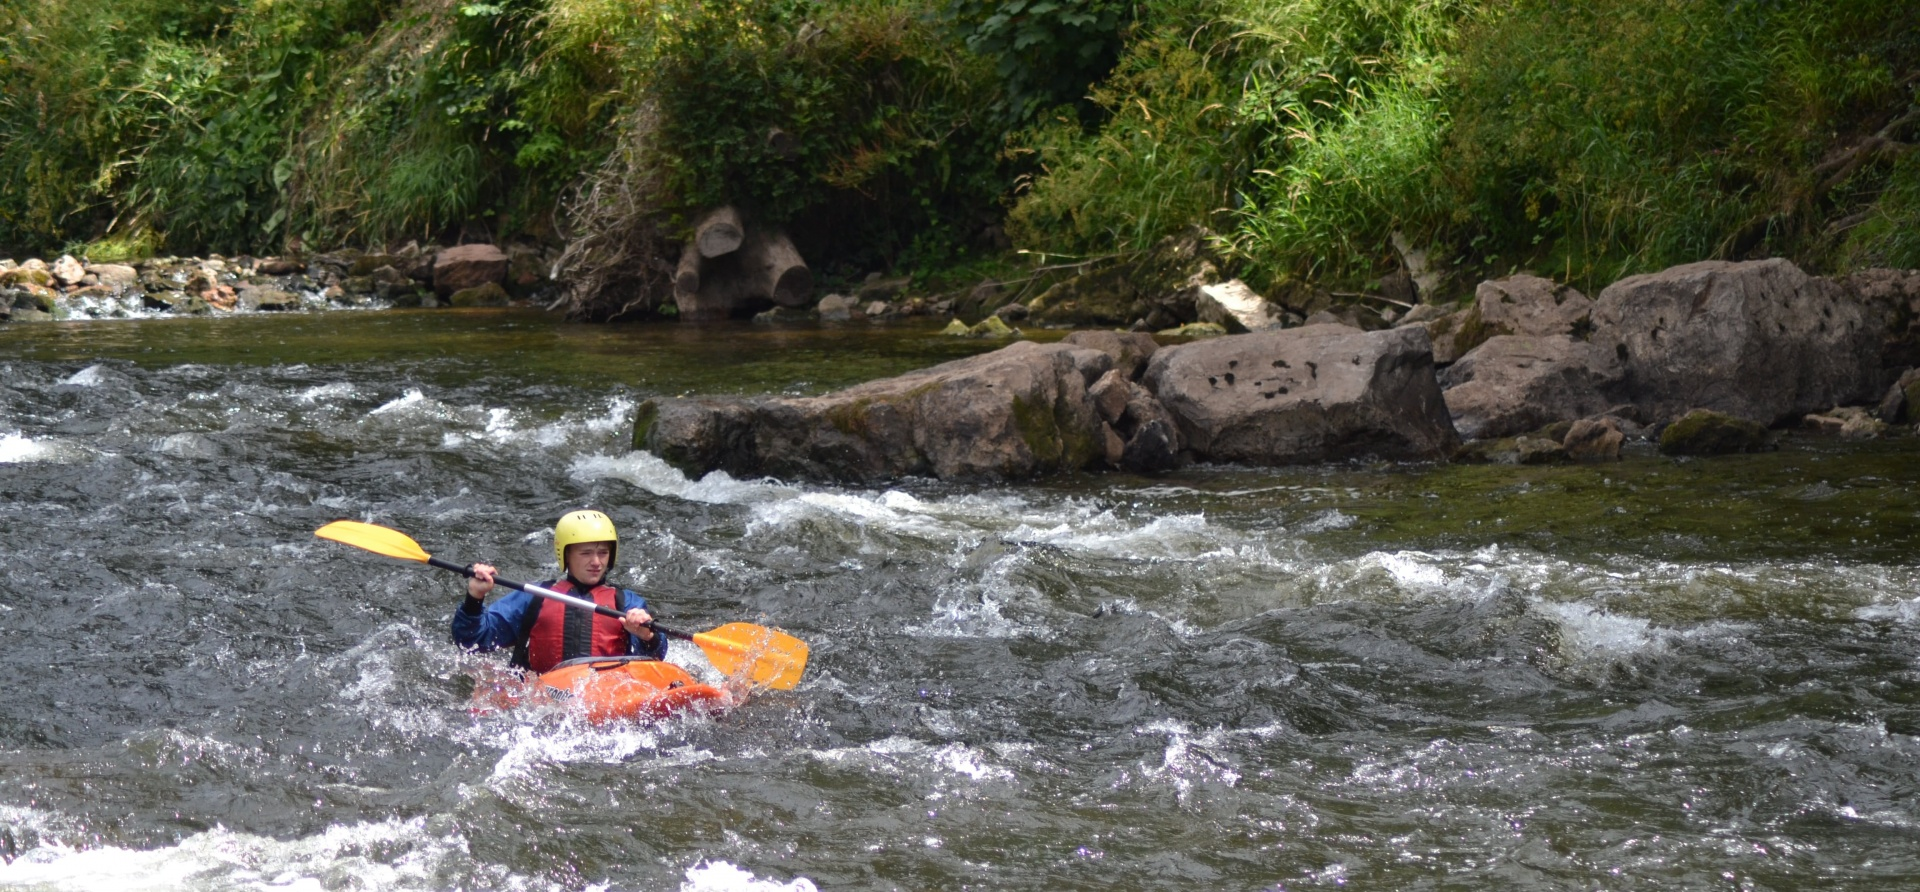 Full Day Kayaking Experience on the River Wye, Gloucestershire-4